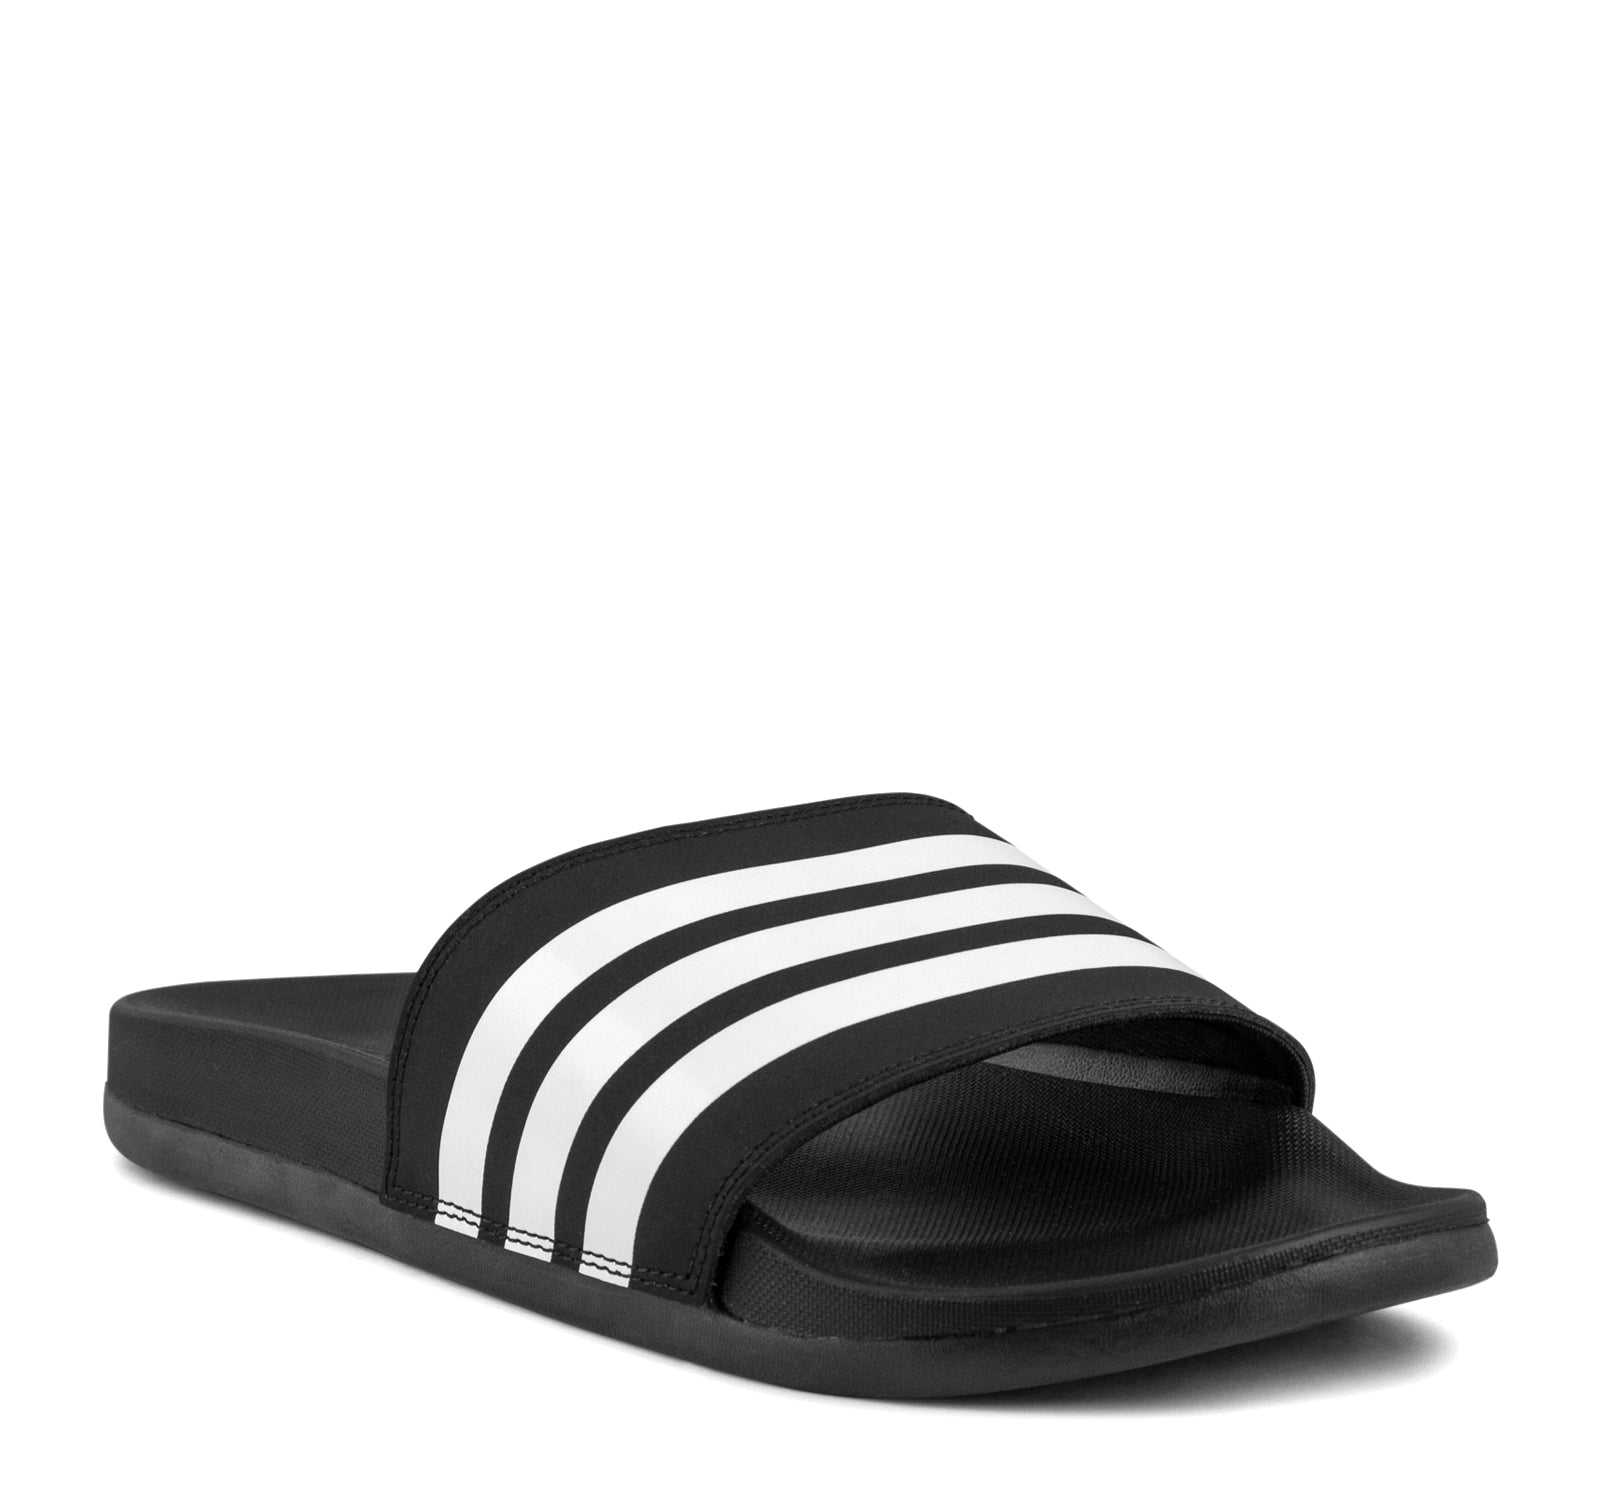 ... Adidas Adilette Cloudfoam Plus Slide in Black and White - Adidas - On  The EDGE ... 9ad94b602